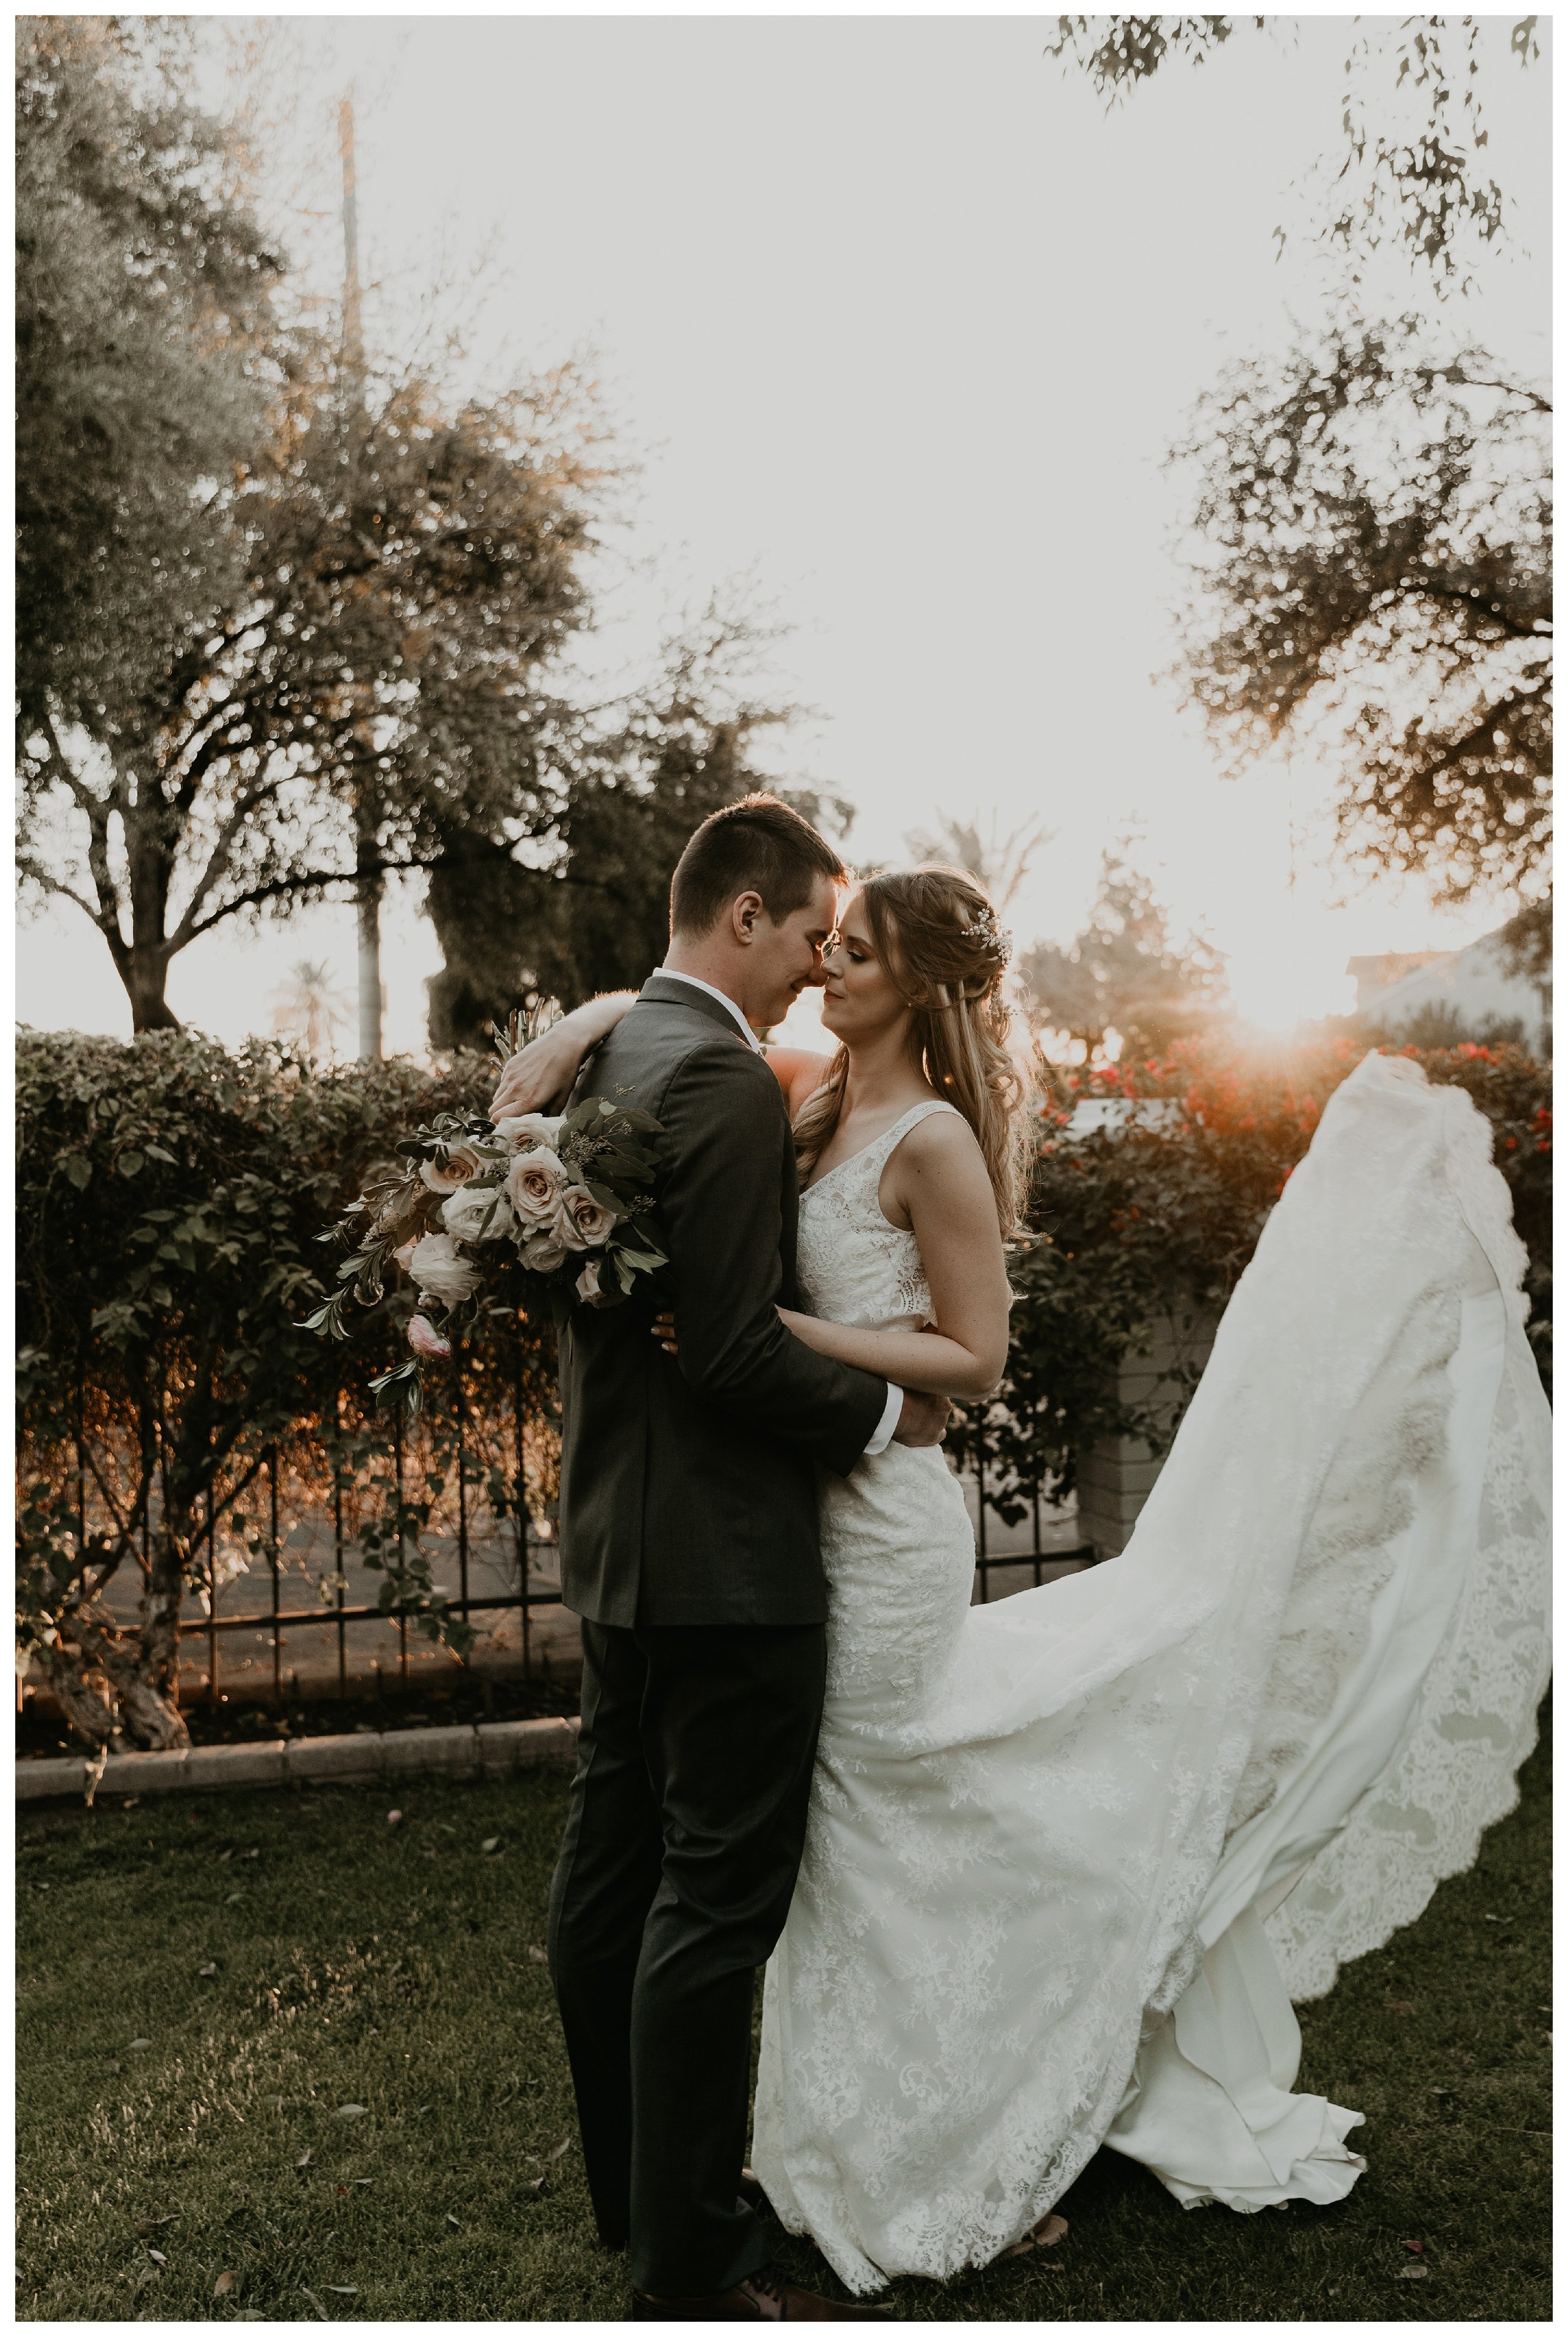 The wright house wedding bride and groom photos